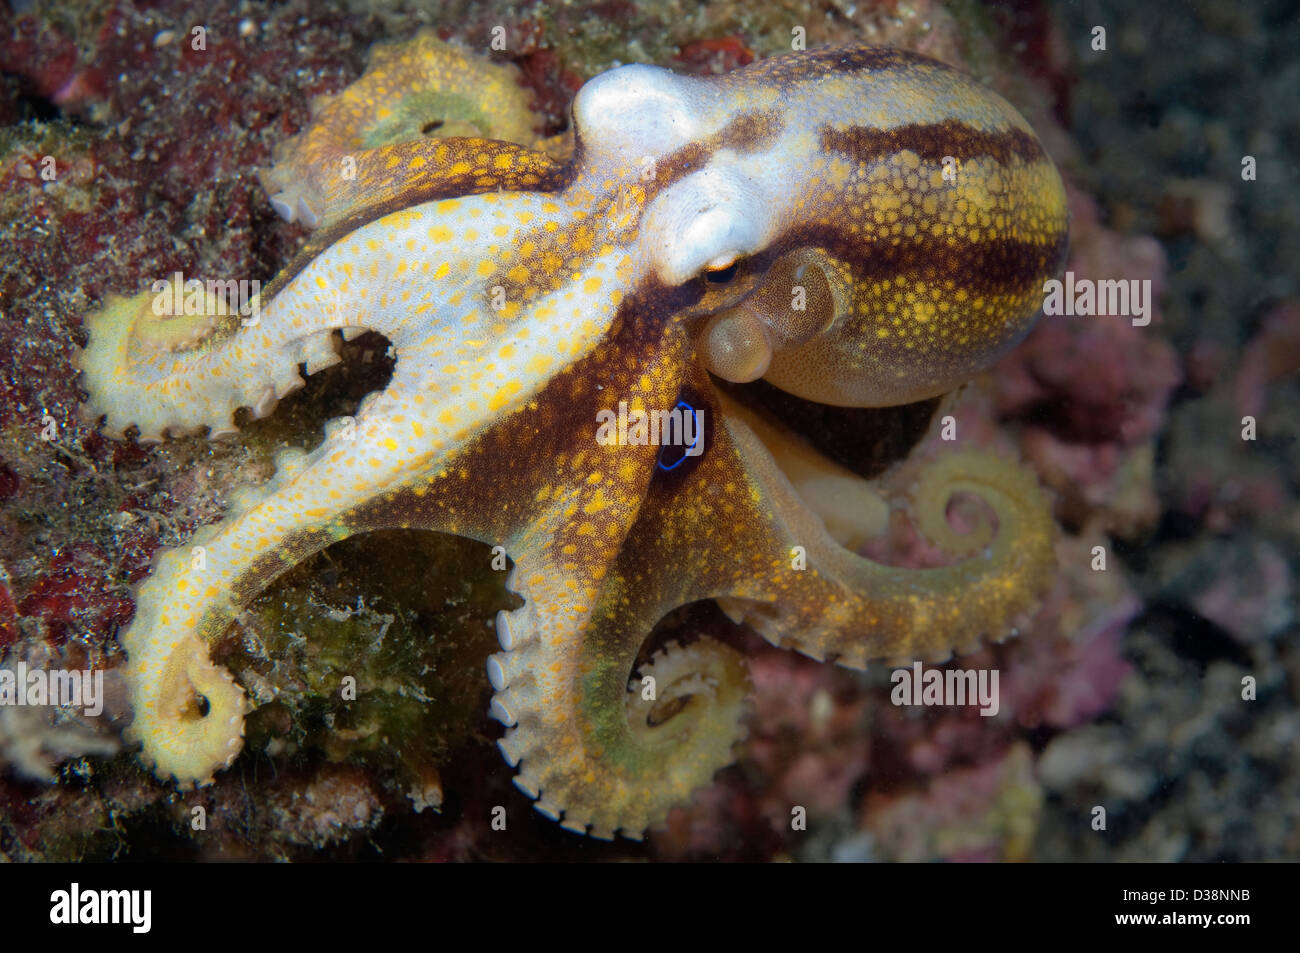 A Poison Ocellate Octopus in Lembeh Strait, North Sulawesi. - Stock Image